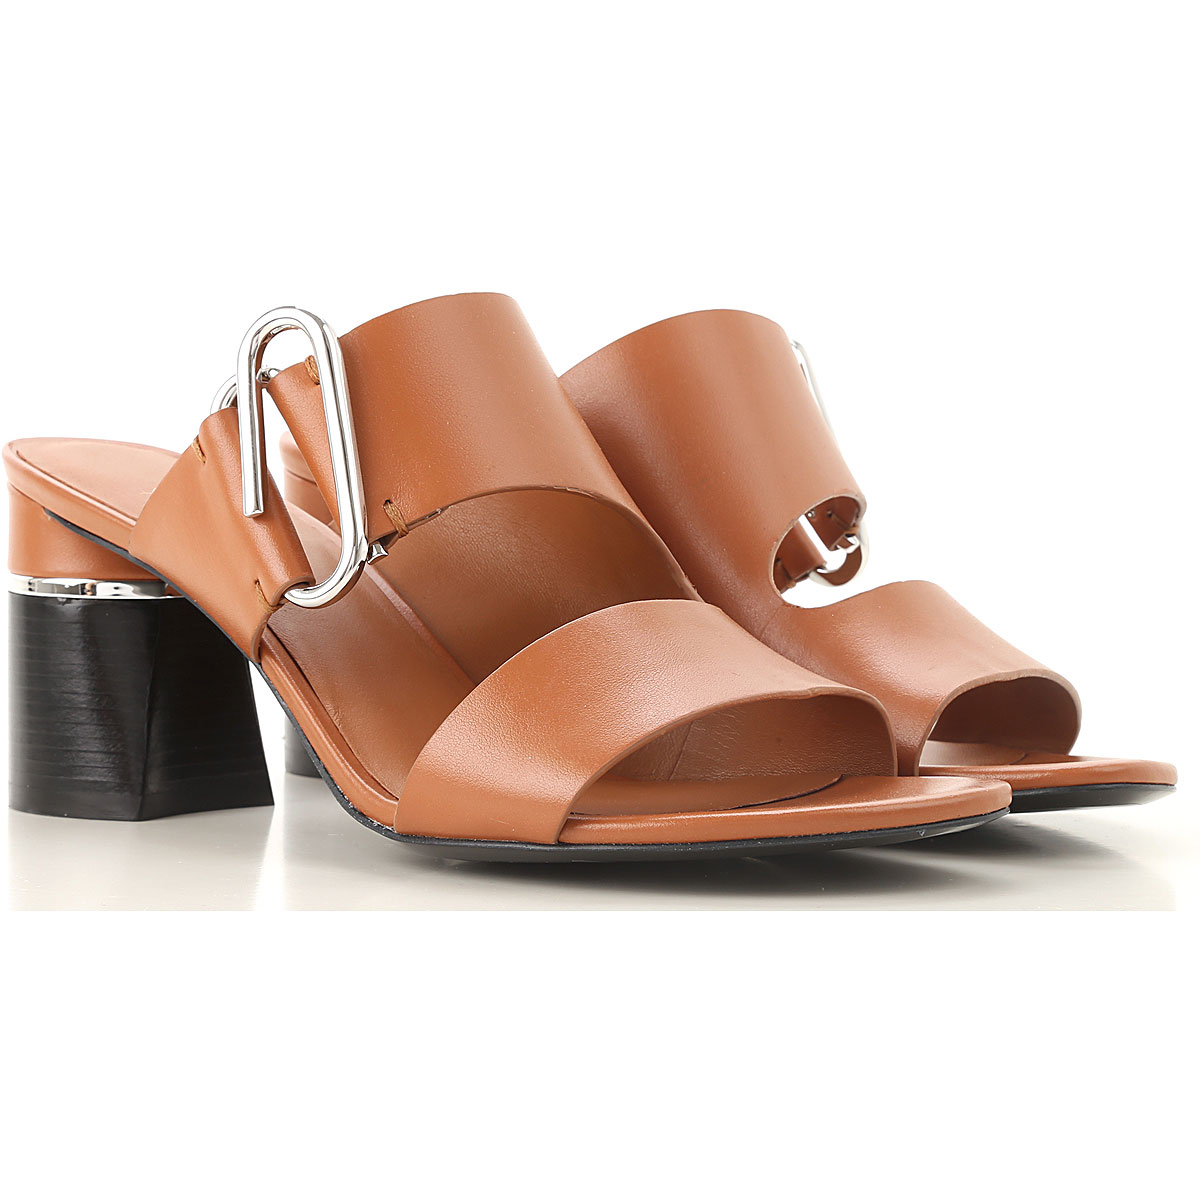 Phillip Lim Sandals for Women, Leather Brown, Leather, 2017, 10 6 7 8 9